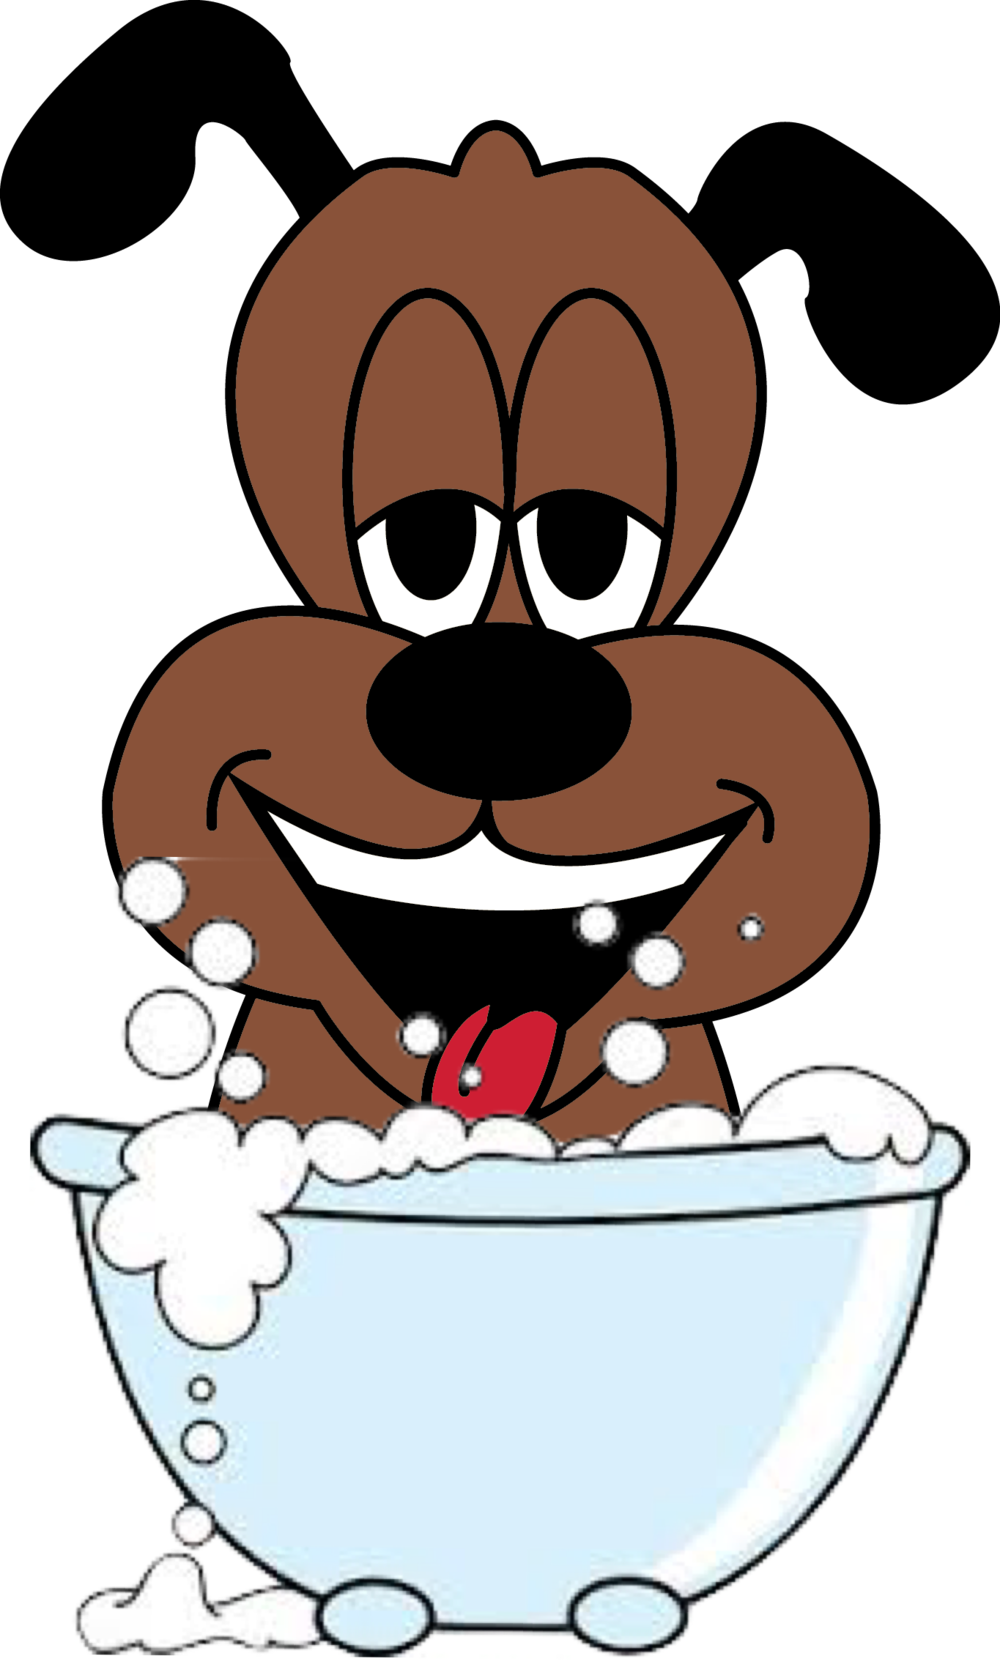 Dog taking a bath clipart picture black and white Dog's Day Out picture black and white